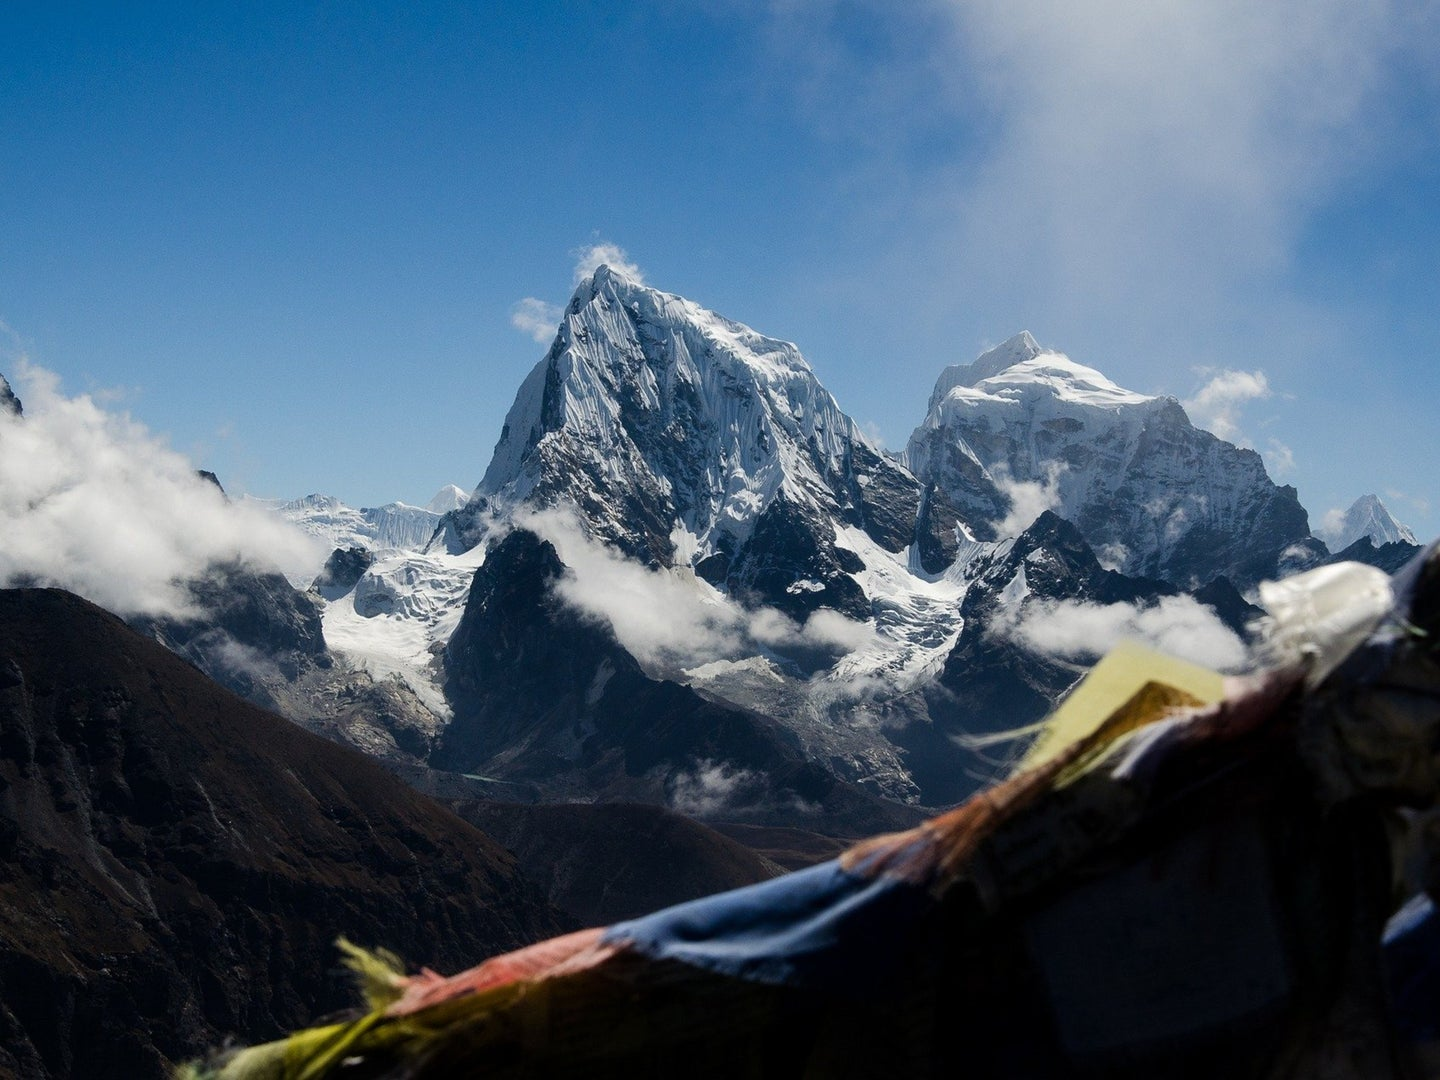 A photo of Mount Everest behind clouds and under a blue sky.